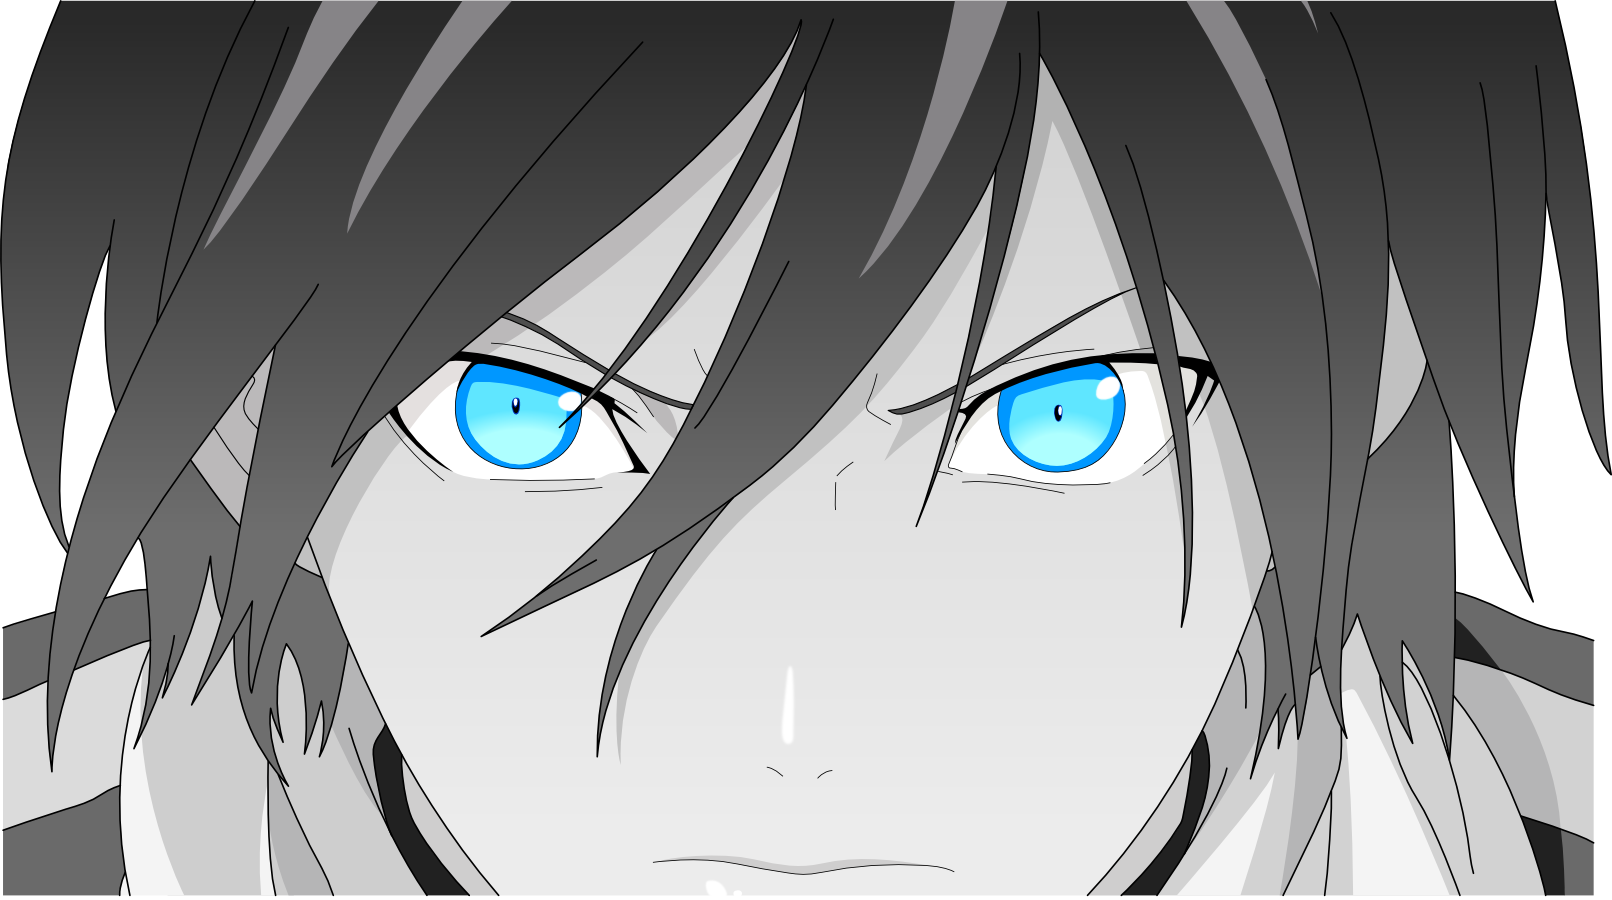 Noragami Yatos Badass Face Vector By Hkkdeviantart On DeviantART